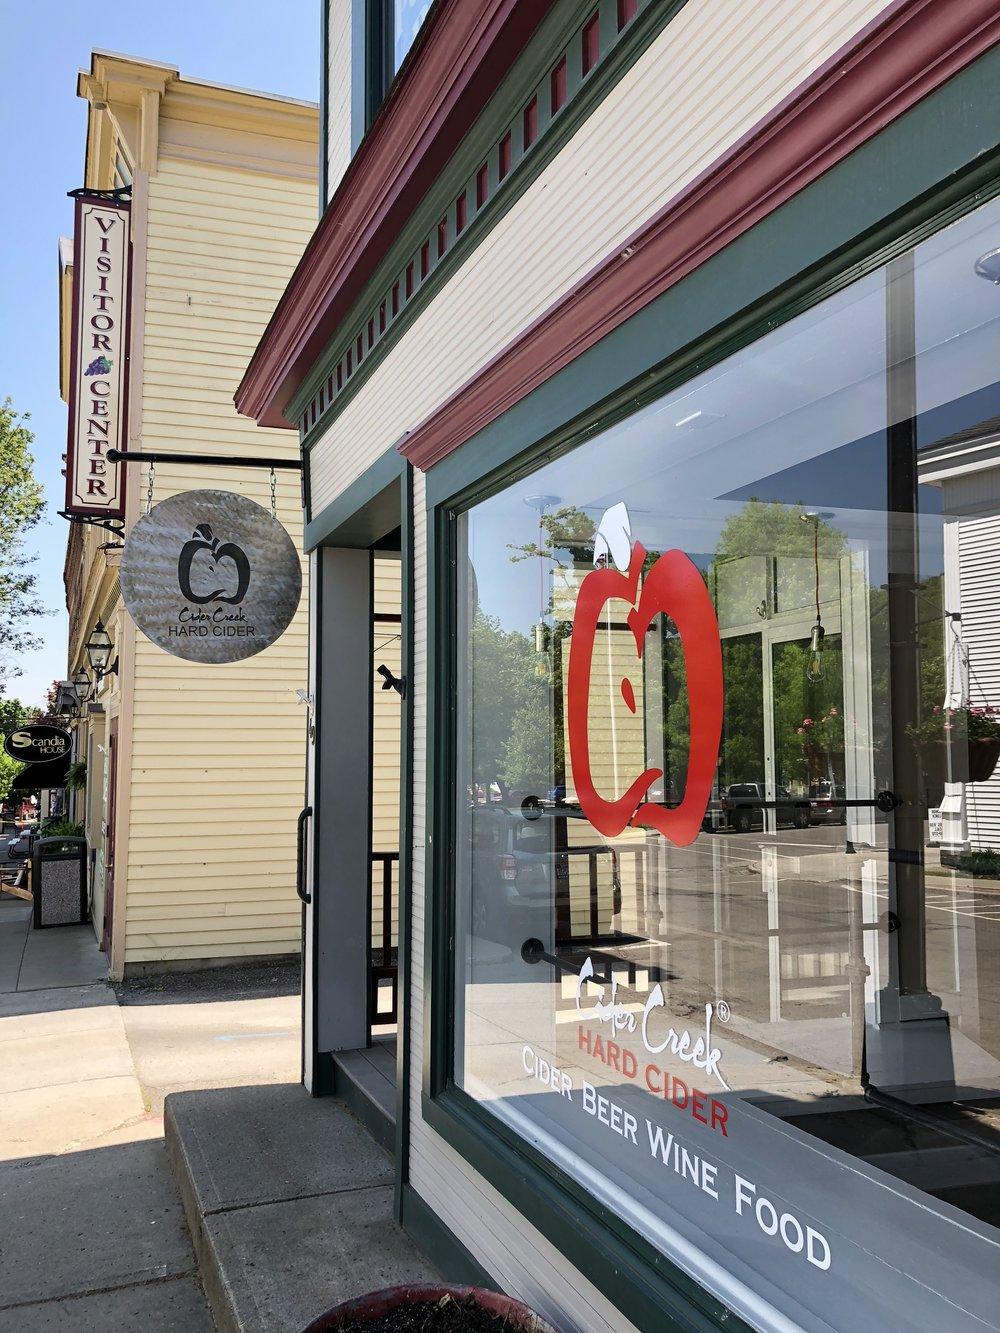 Now open on the village square with extended summer hours well into the evening (noon - 9p).